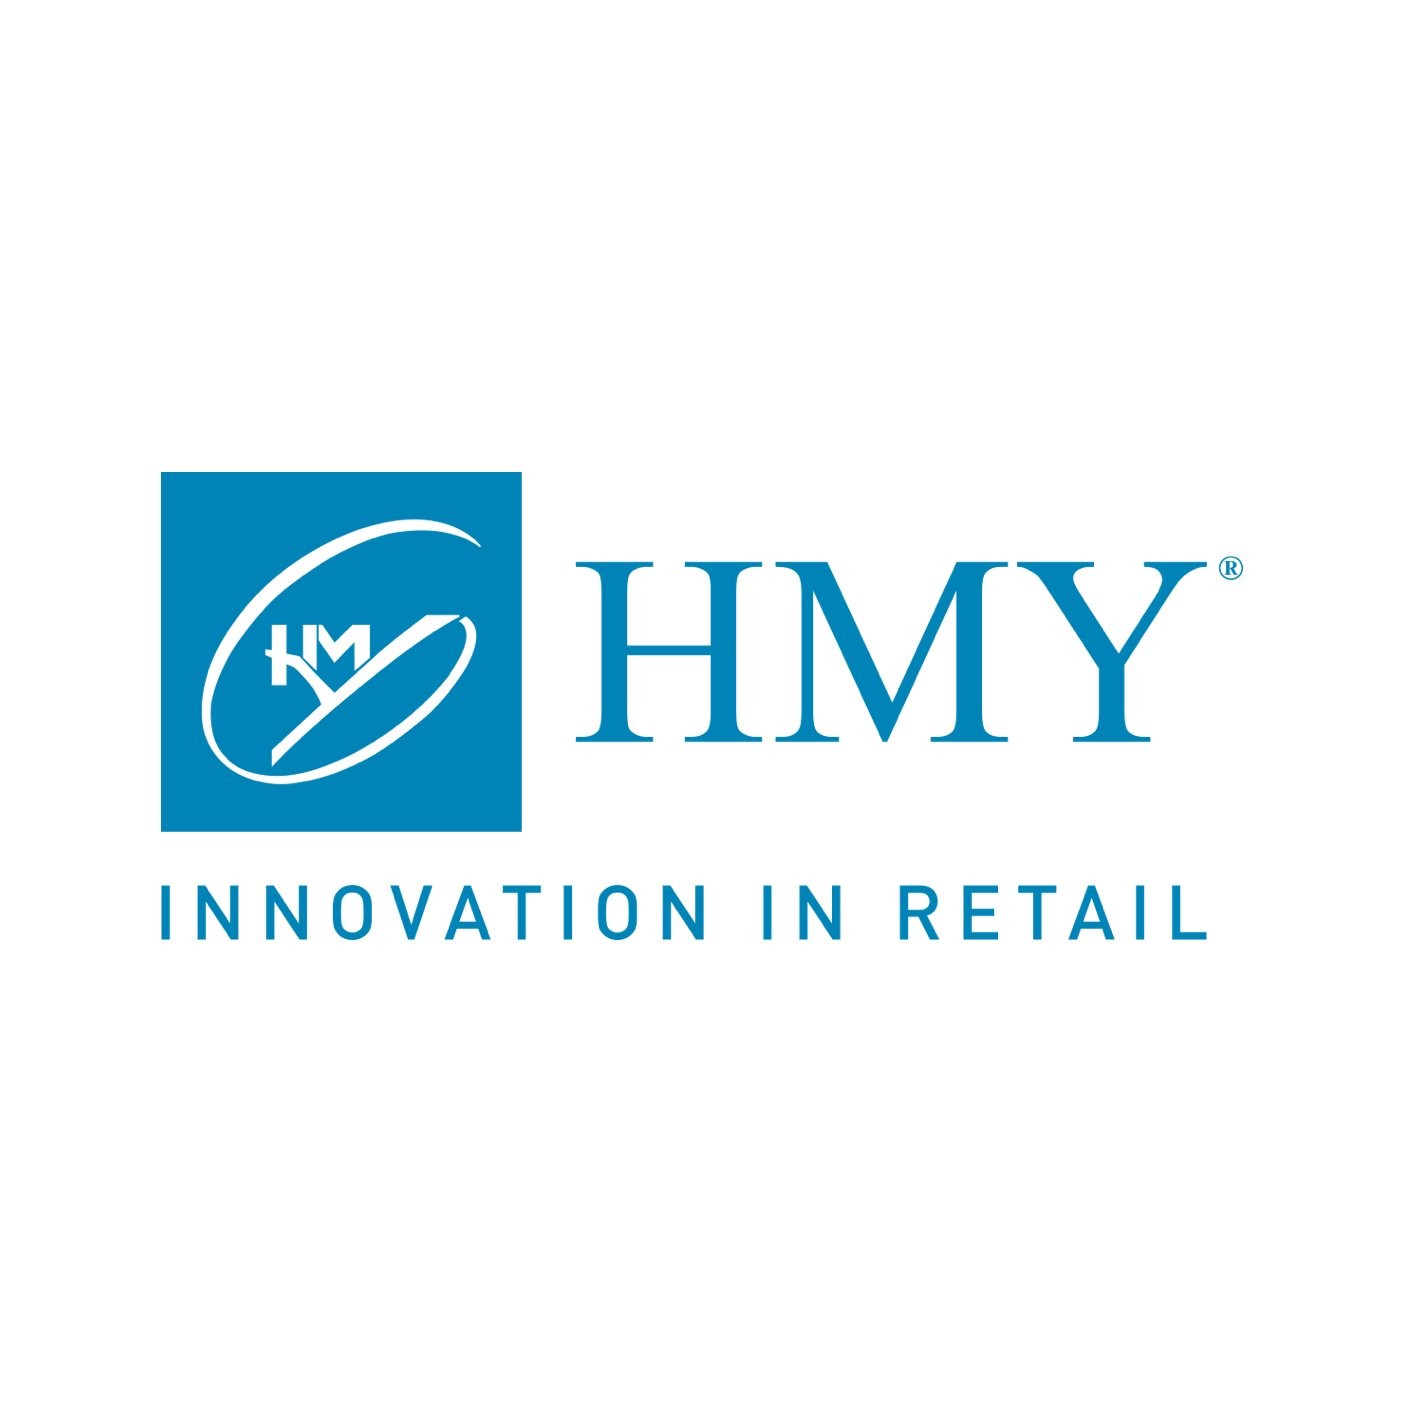 Hmy on twitter our lovely lorena gomez explaining an exciting hmy on twitter our lovely lorena gomez explaining an exciting interactive experience at one our shops in spain come check it out for yourself solutioingenieria Image collections